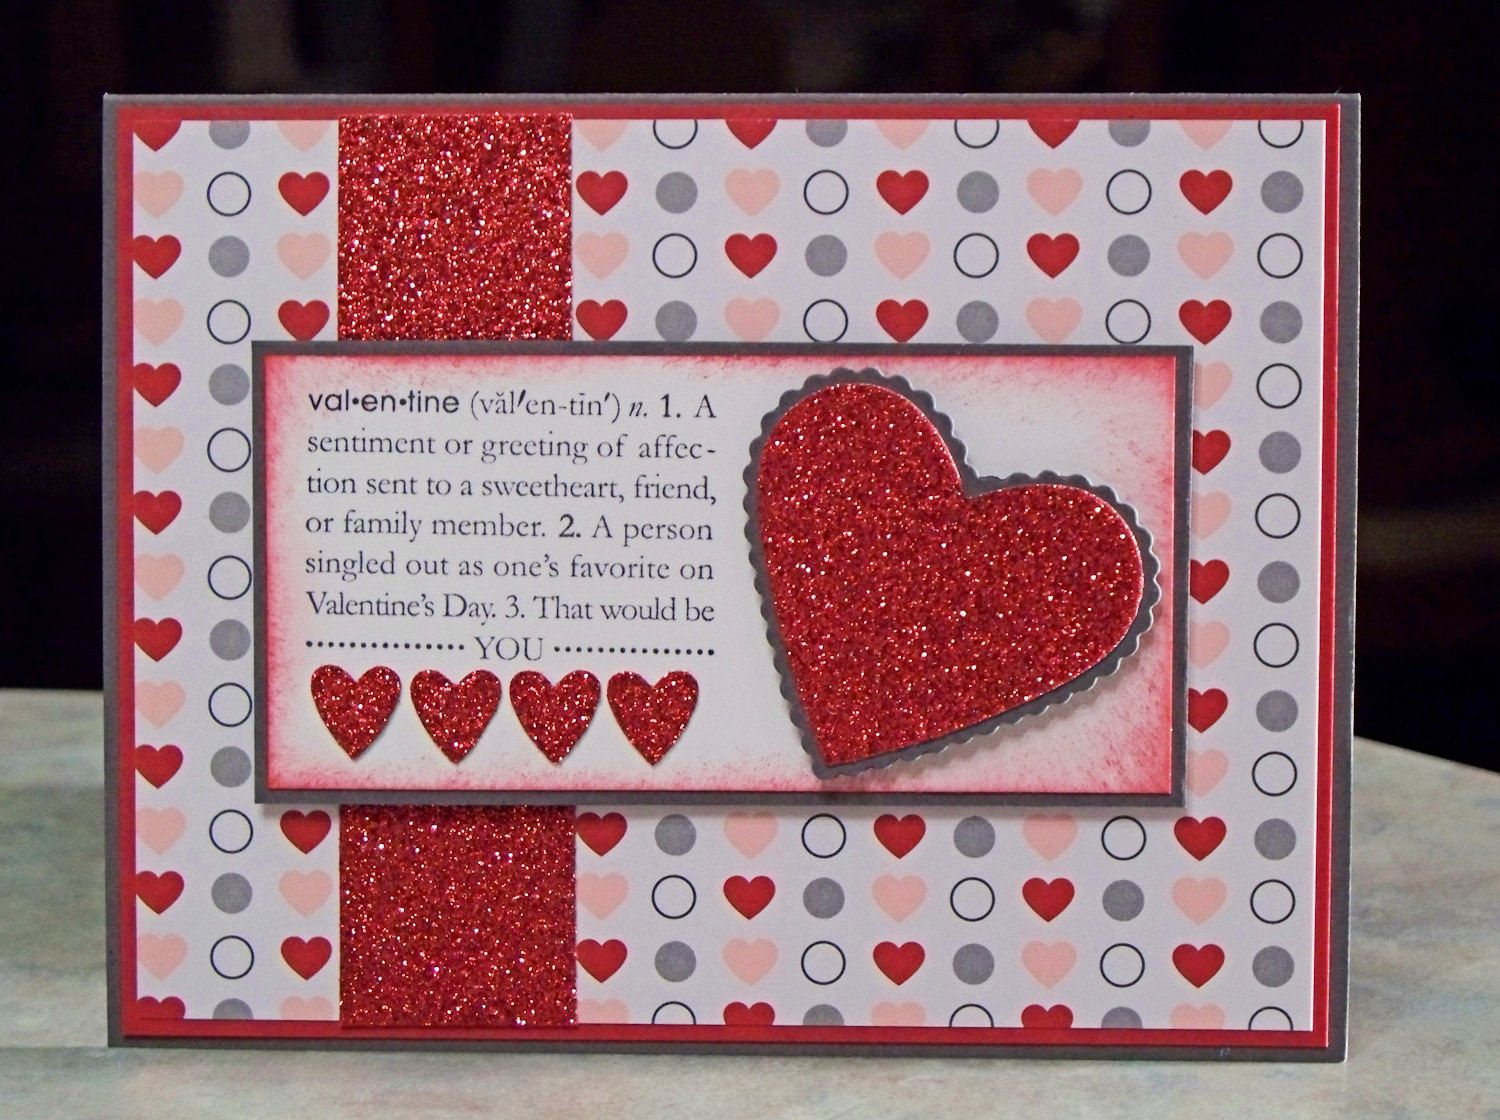 Handmade Valentines Day Card using Stampin Up Scallop Heart – Homemade Valentine Cards Ideas